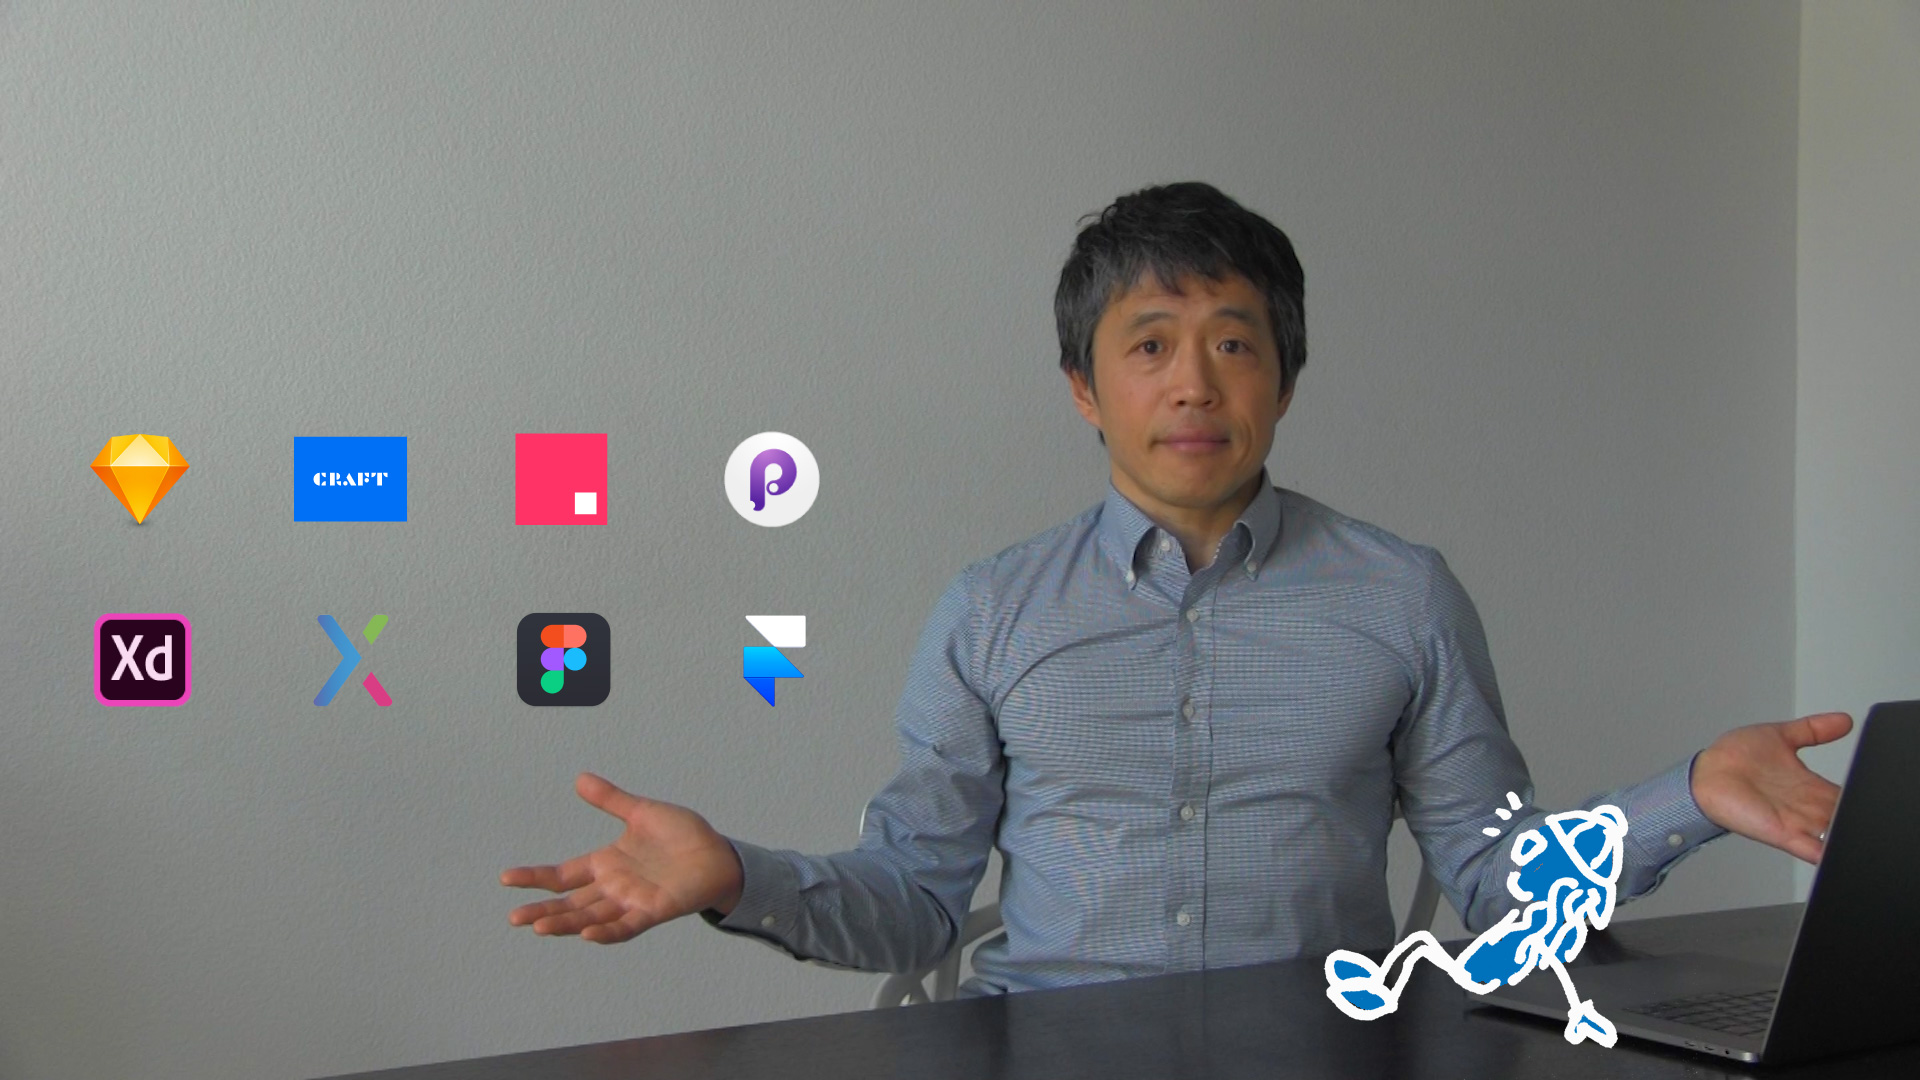 Logos of 8 popular prototyping tools shown with a person.